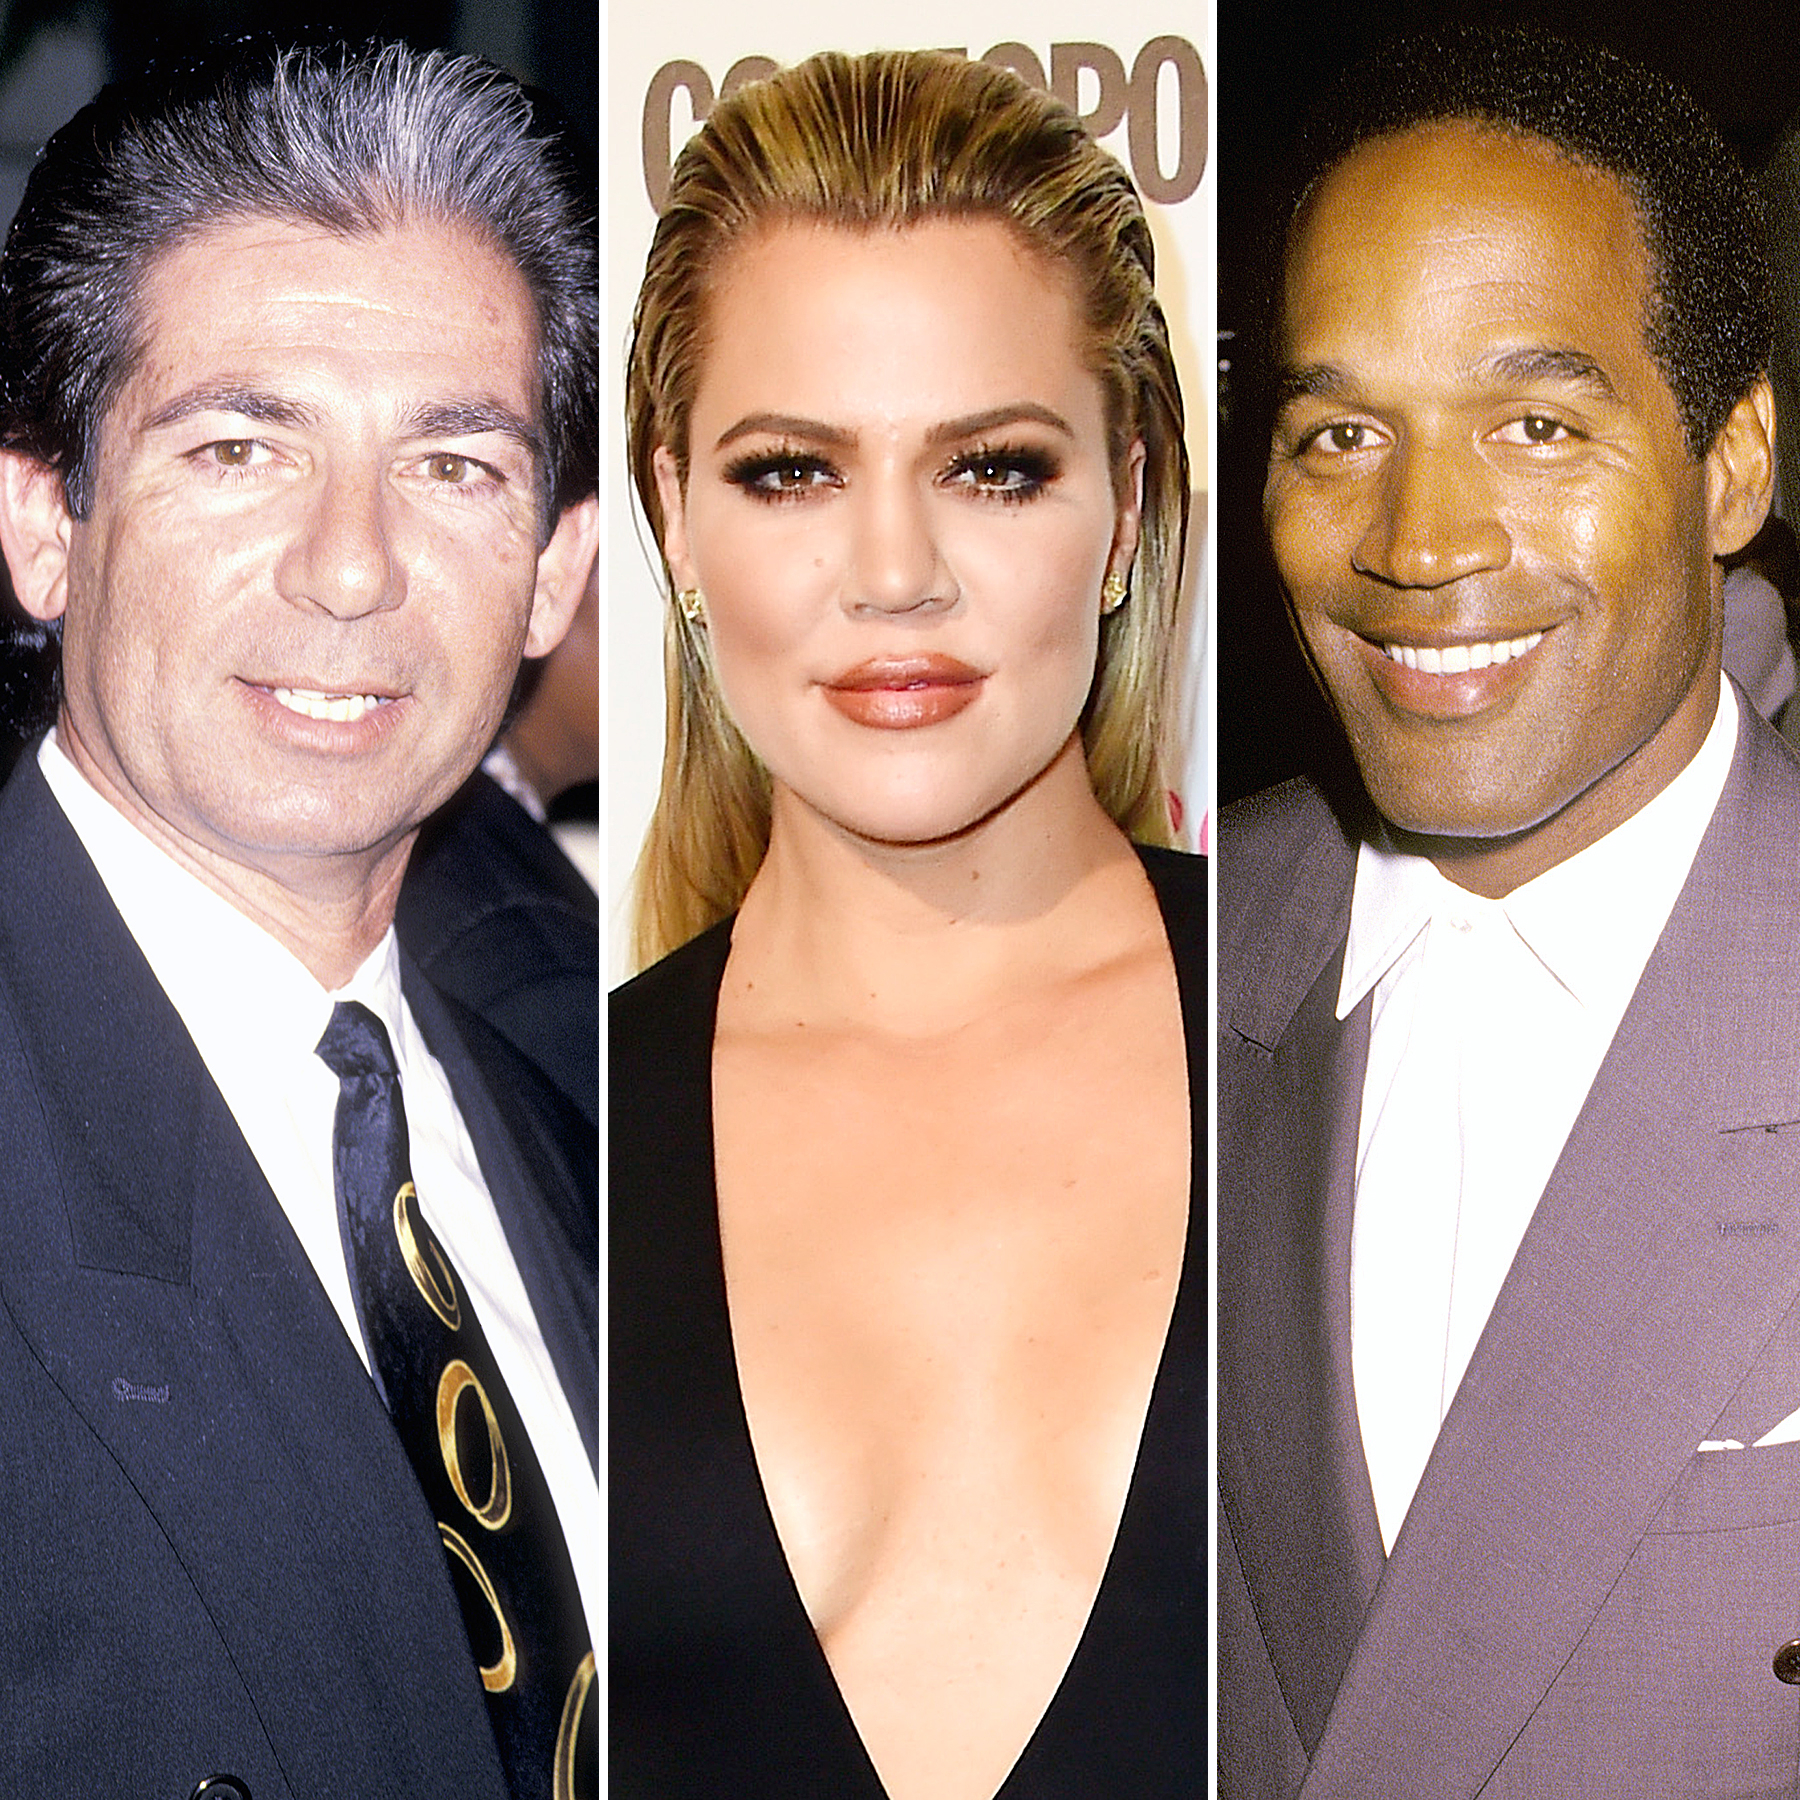 Khloe Kardashian Jokes About Whether Oj Simpson Is Her Dad